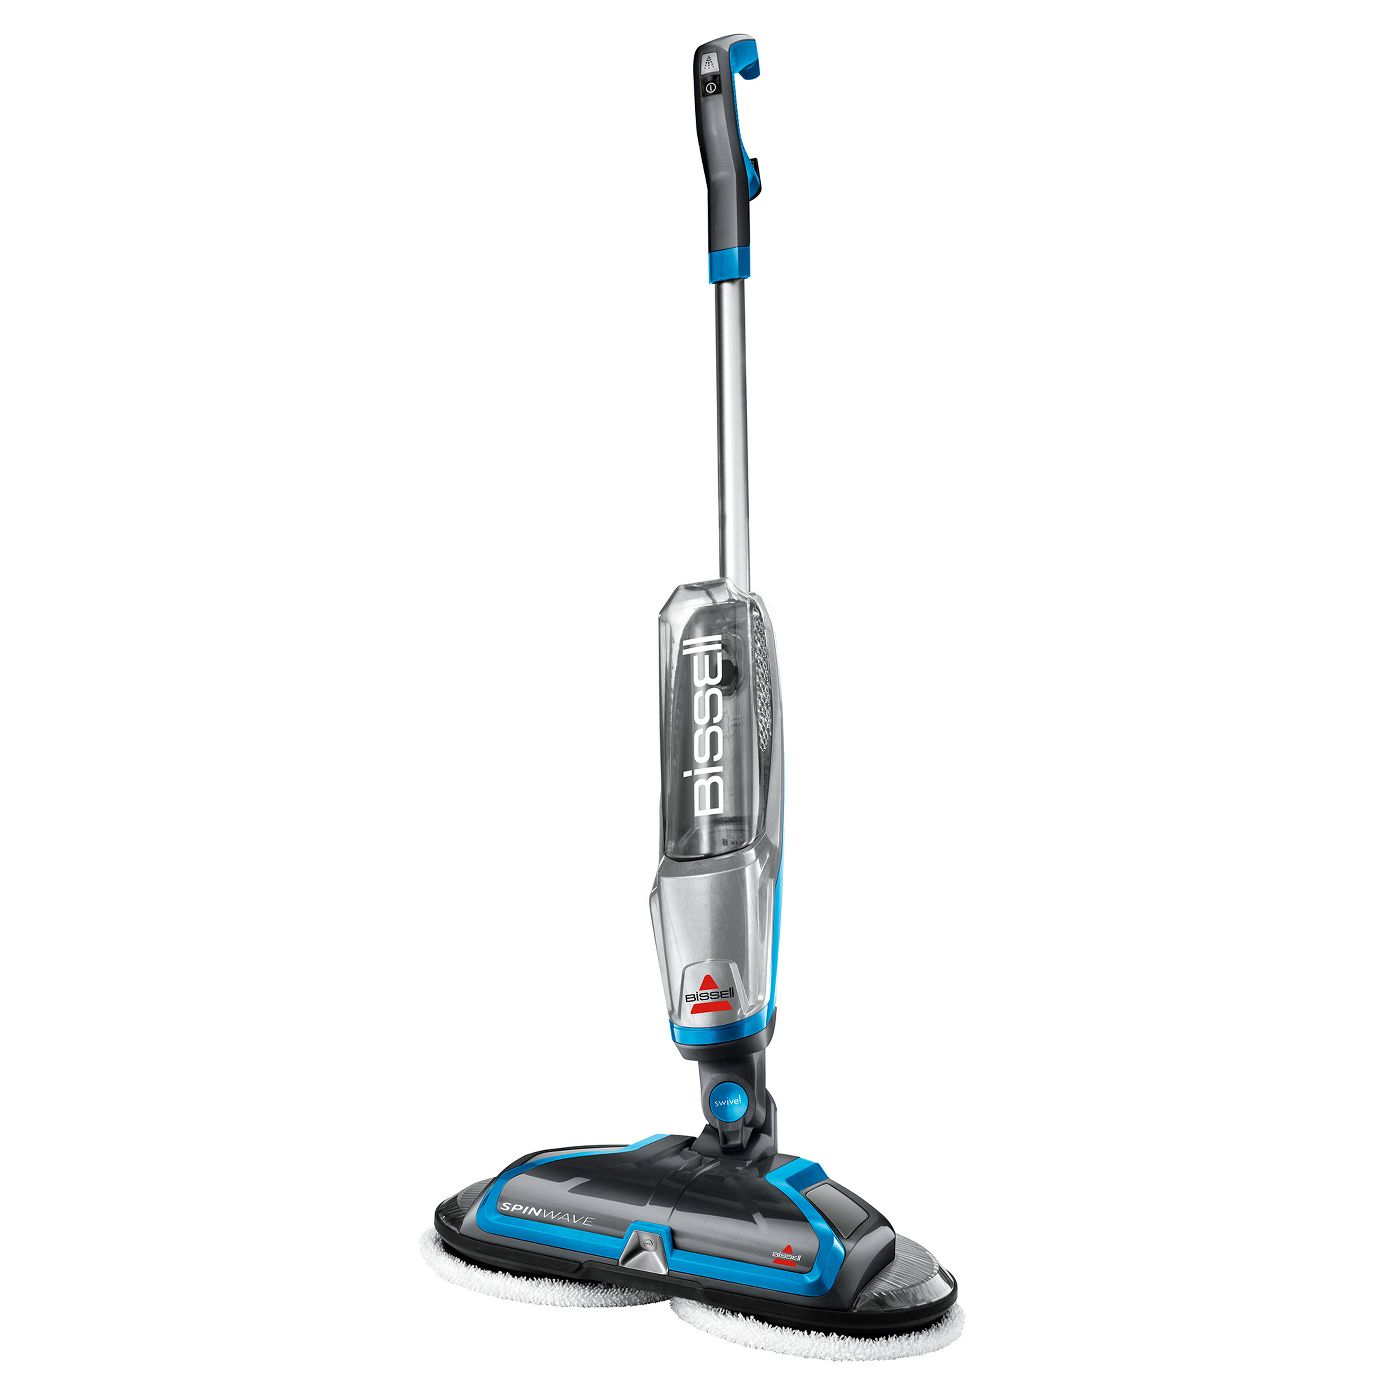 BISSELL SpinWave Plus Hard Floor Spin Mop - 20391 - image 1 of 8